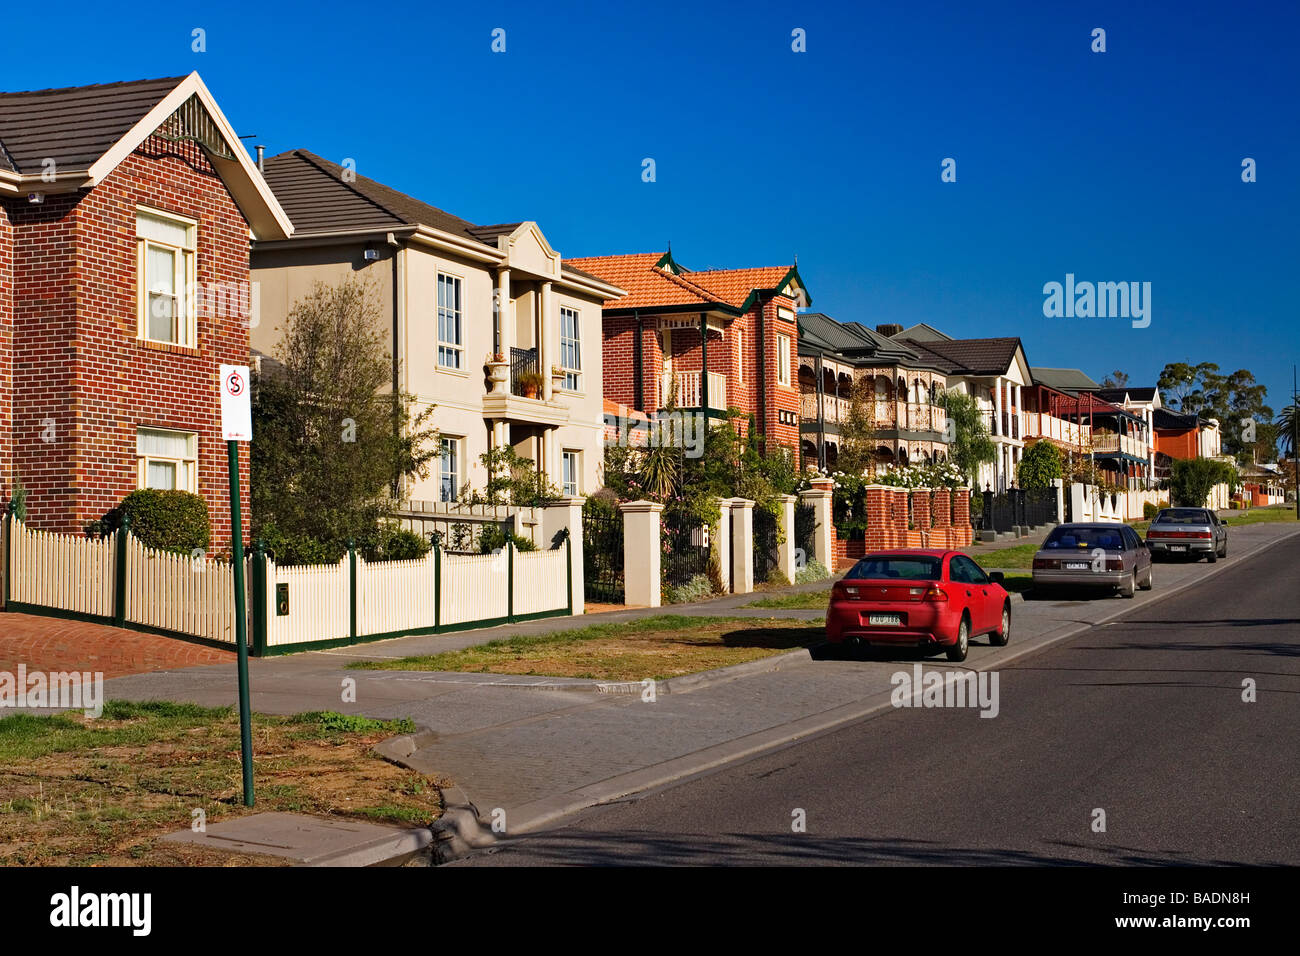 Residential Homes / Australian homes on an housing estate.The Stock Photo, Royalty Free Image ...